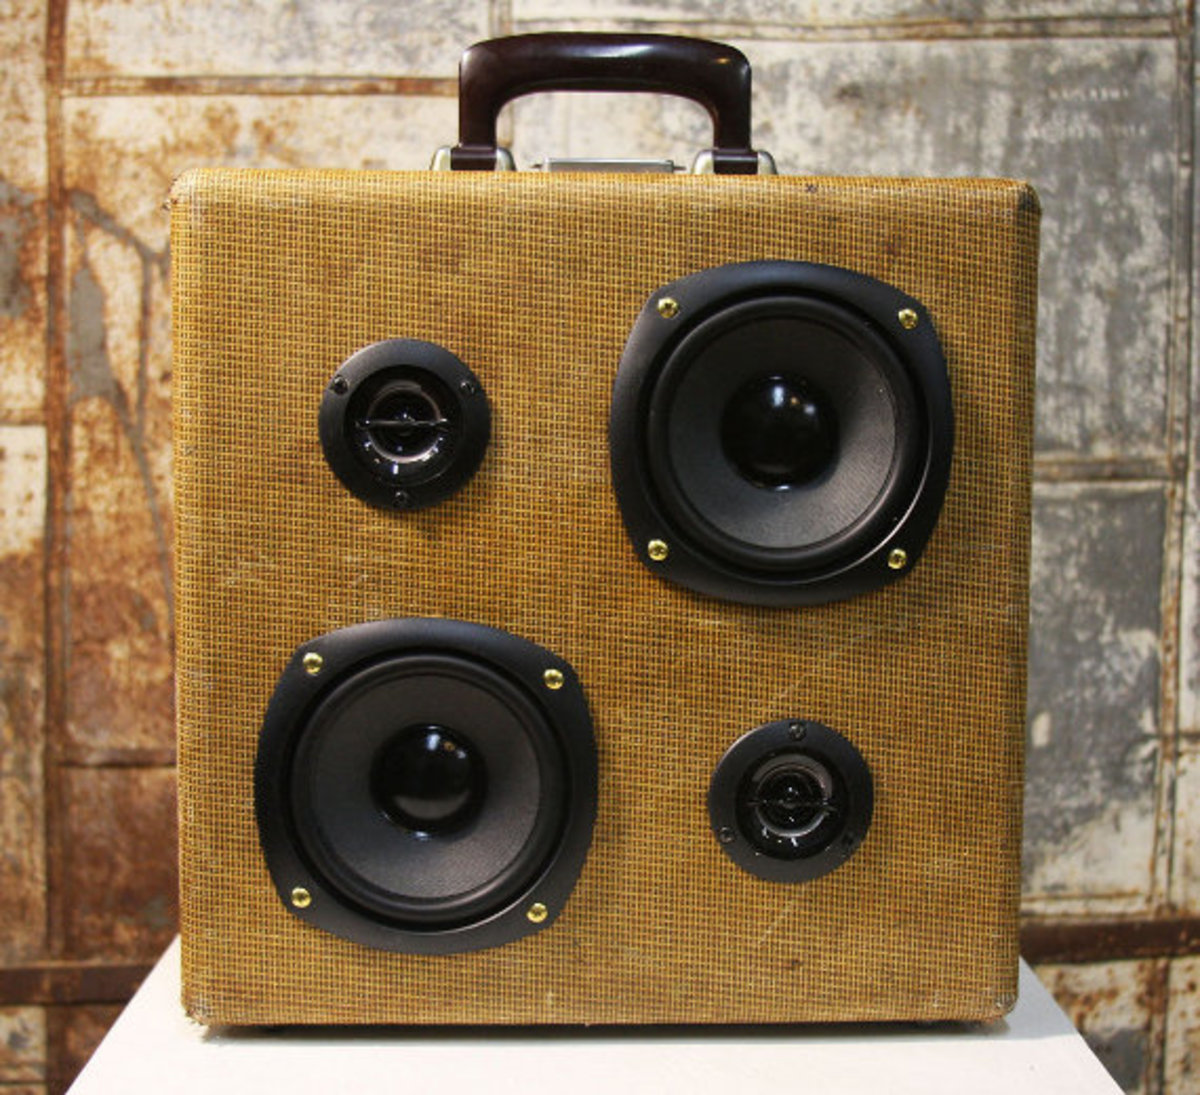 case-of-base-recycled-vintage-suitcase-boombox-02